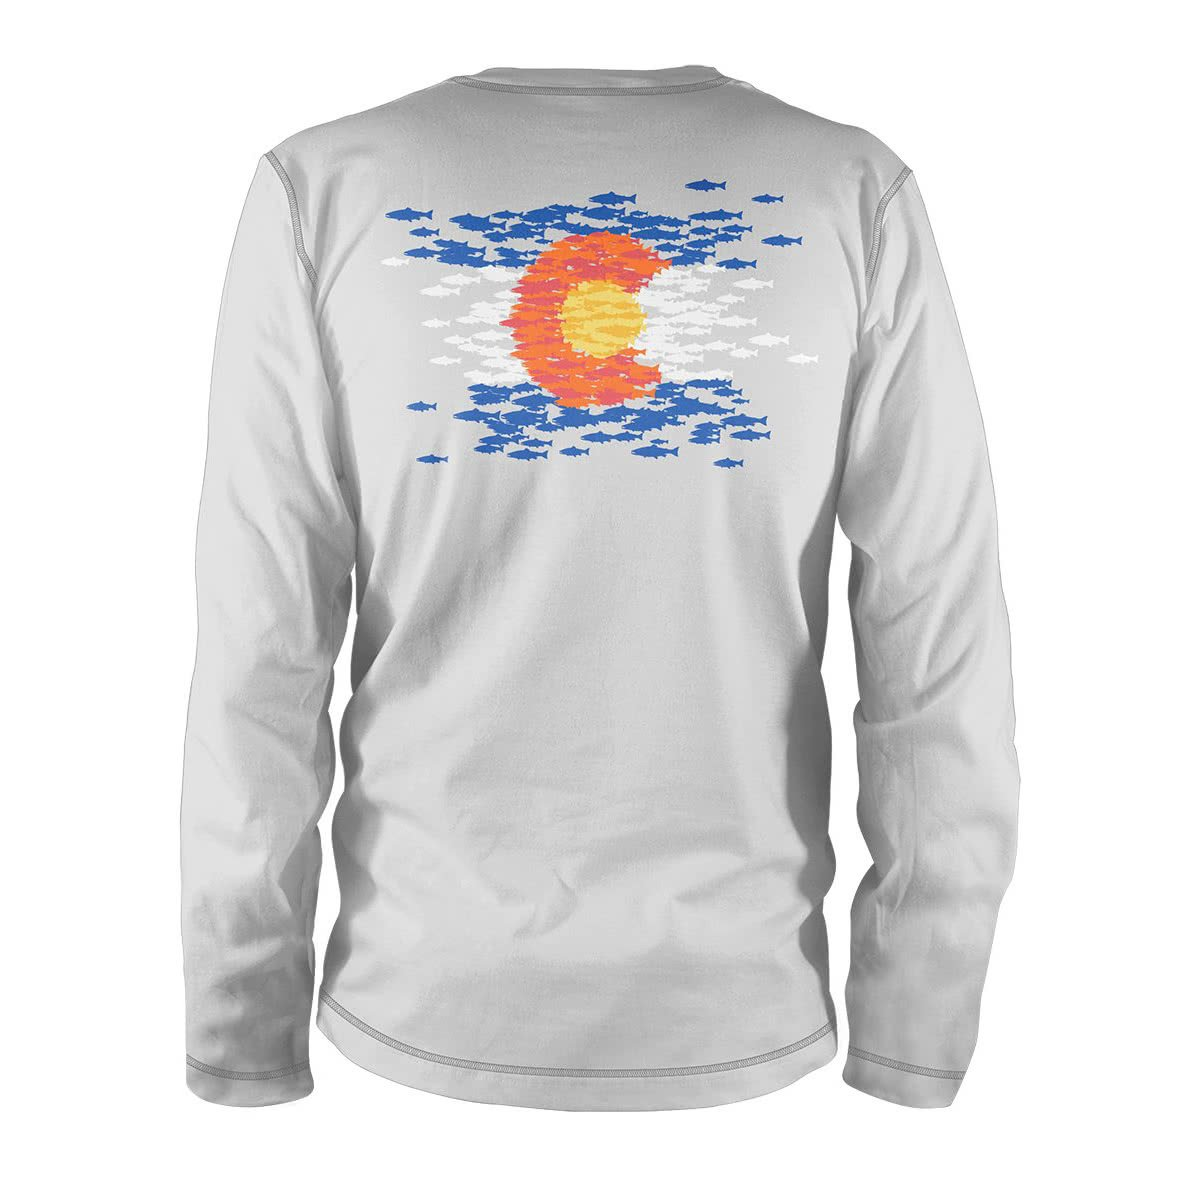 COMS85 RepYourWater Colorado Flag Fish Mosaic Performance Long Sleeve Tee Ultra Light Sun Shirt Light Gray Back